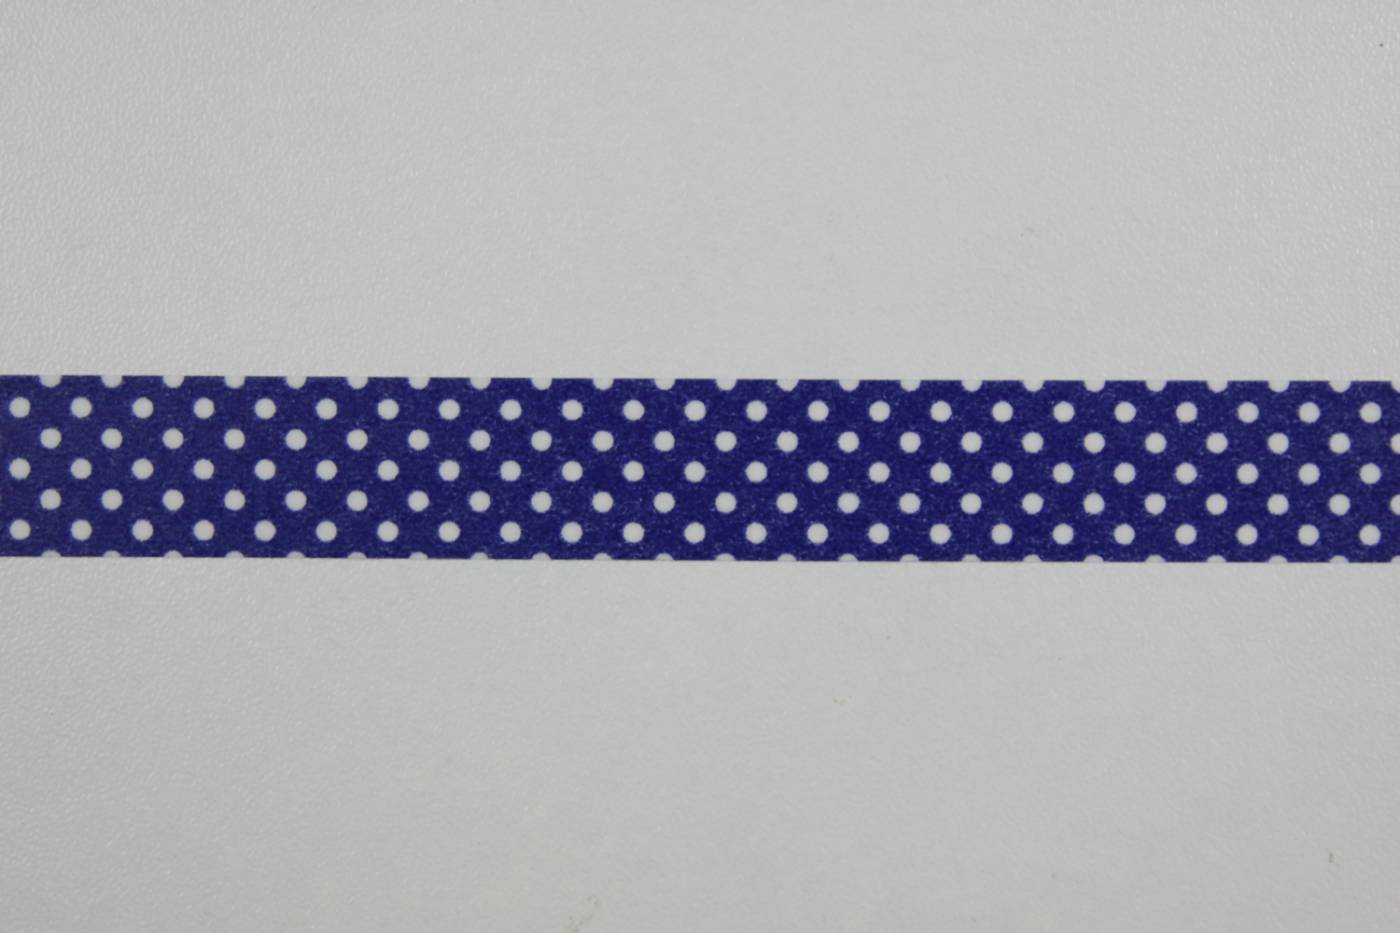 Washi tape-masking tape-koningsblauw-wit